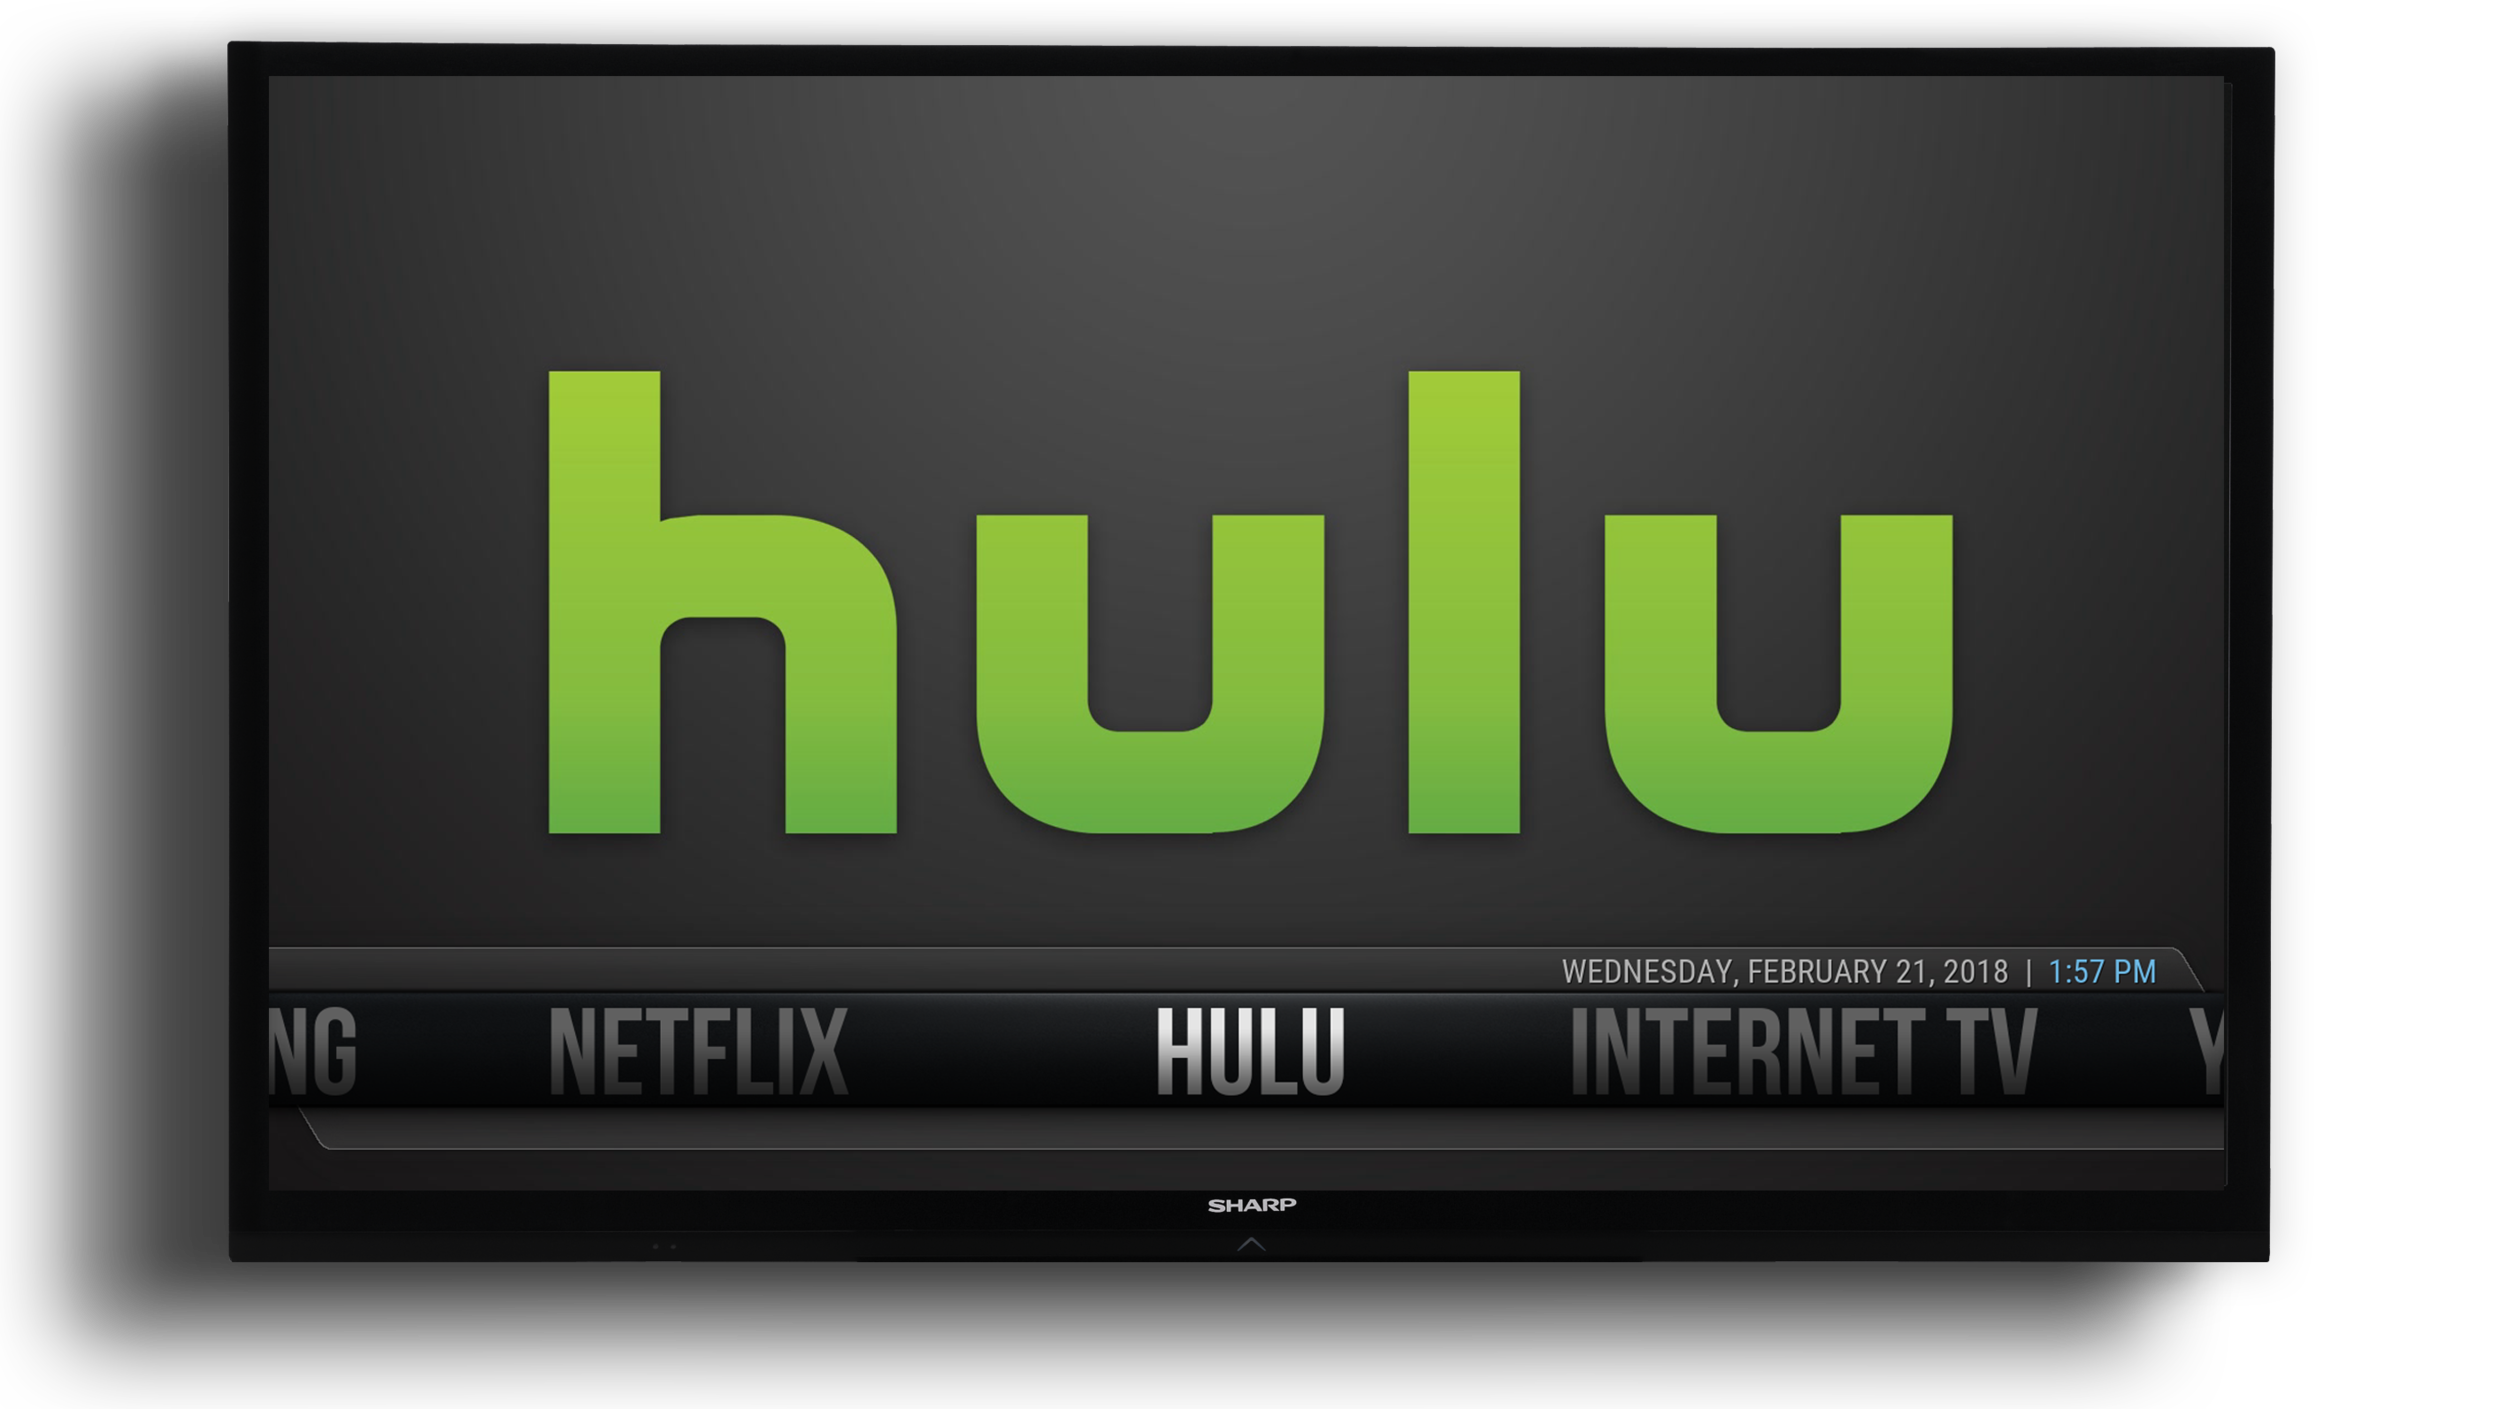 System_TV_Hulu.png